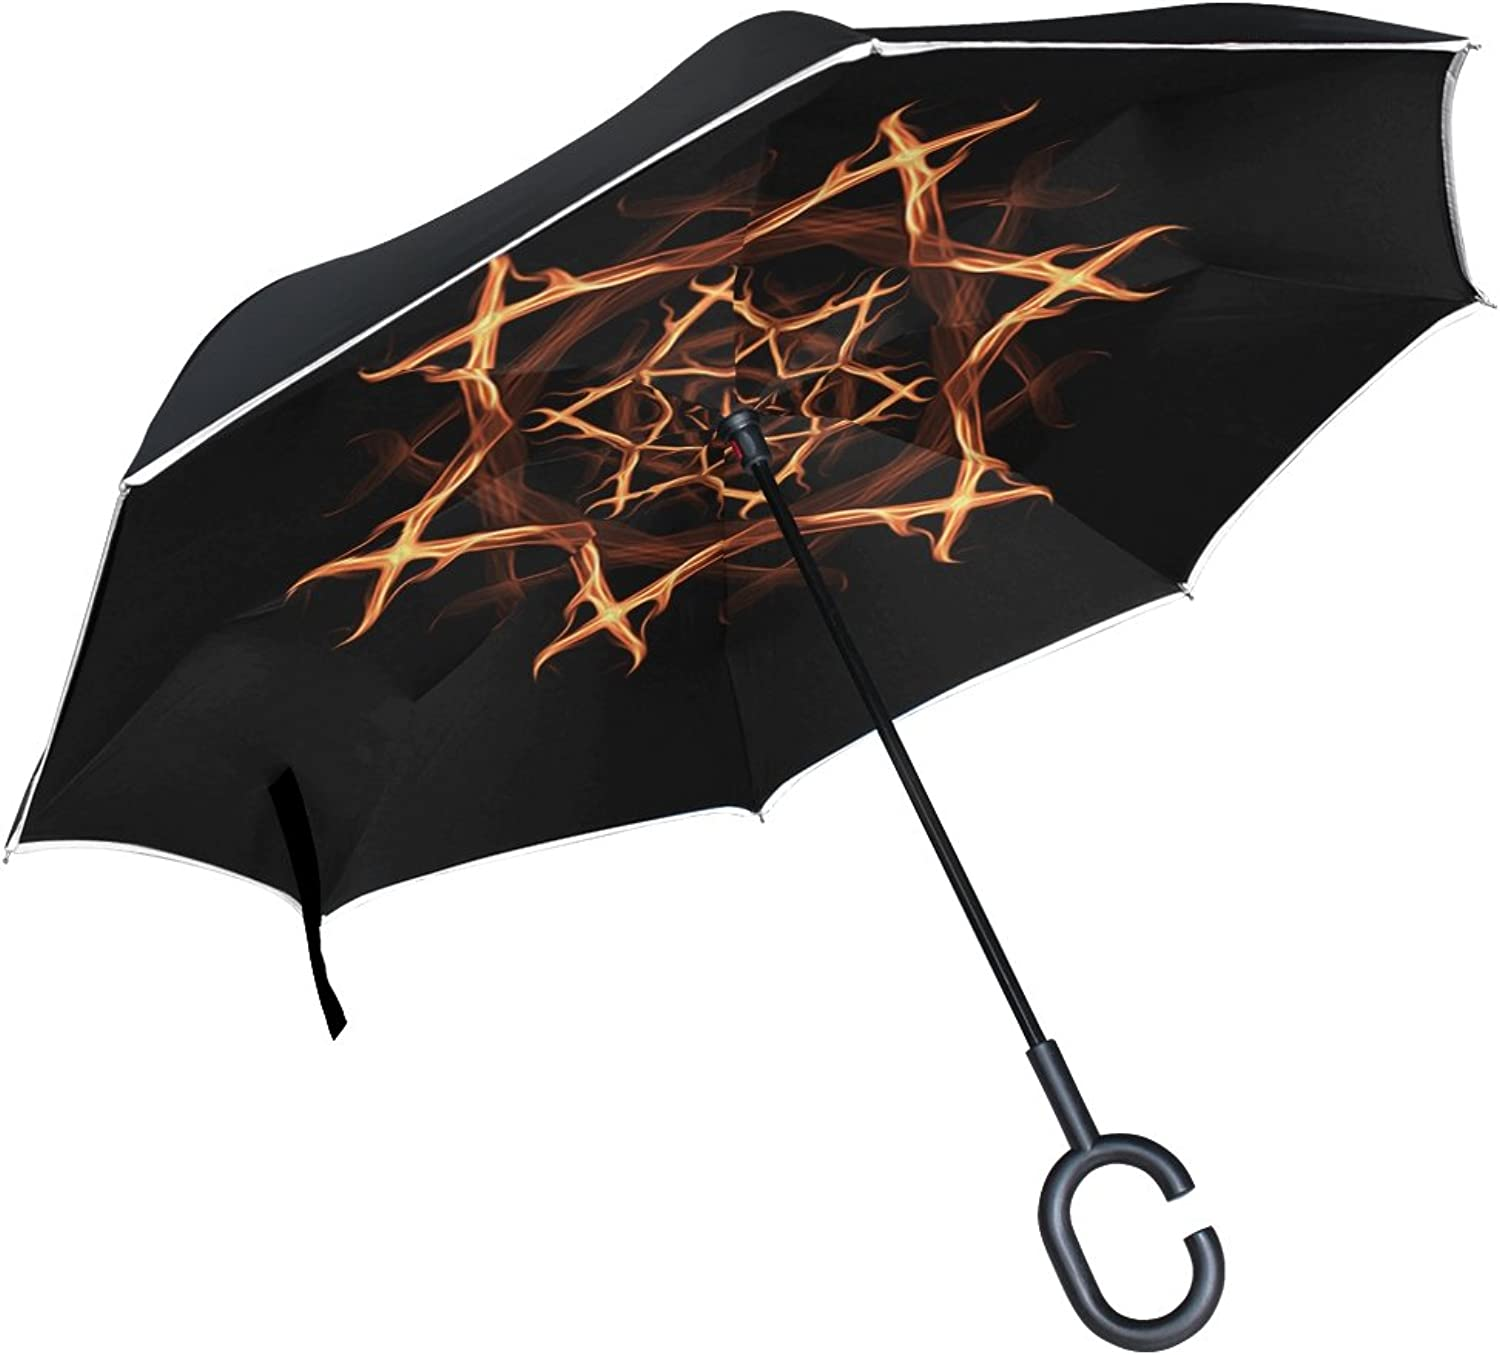 Double Layer Ingreened Pentagram Witches Pentagram Witch Esoteric Umbrellas Reverse Folding Umbrella Windproof Uv Predection Big Straight Umbrella for Car Rain Outdoor with CShaped Handle